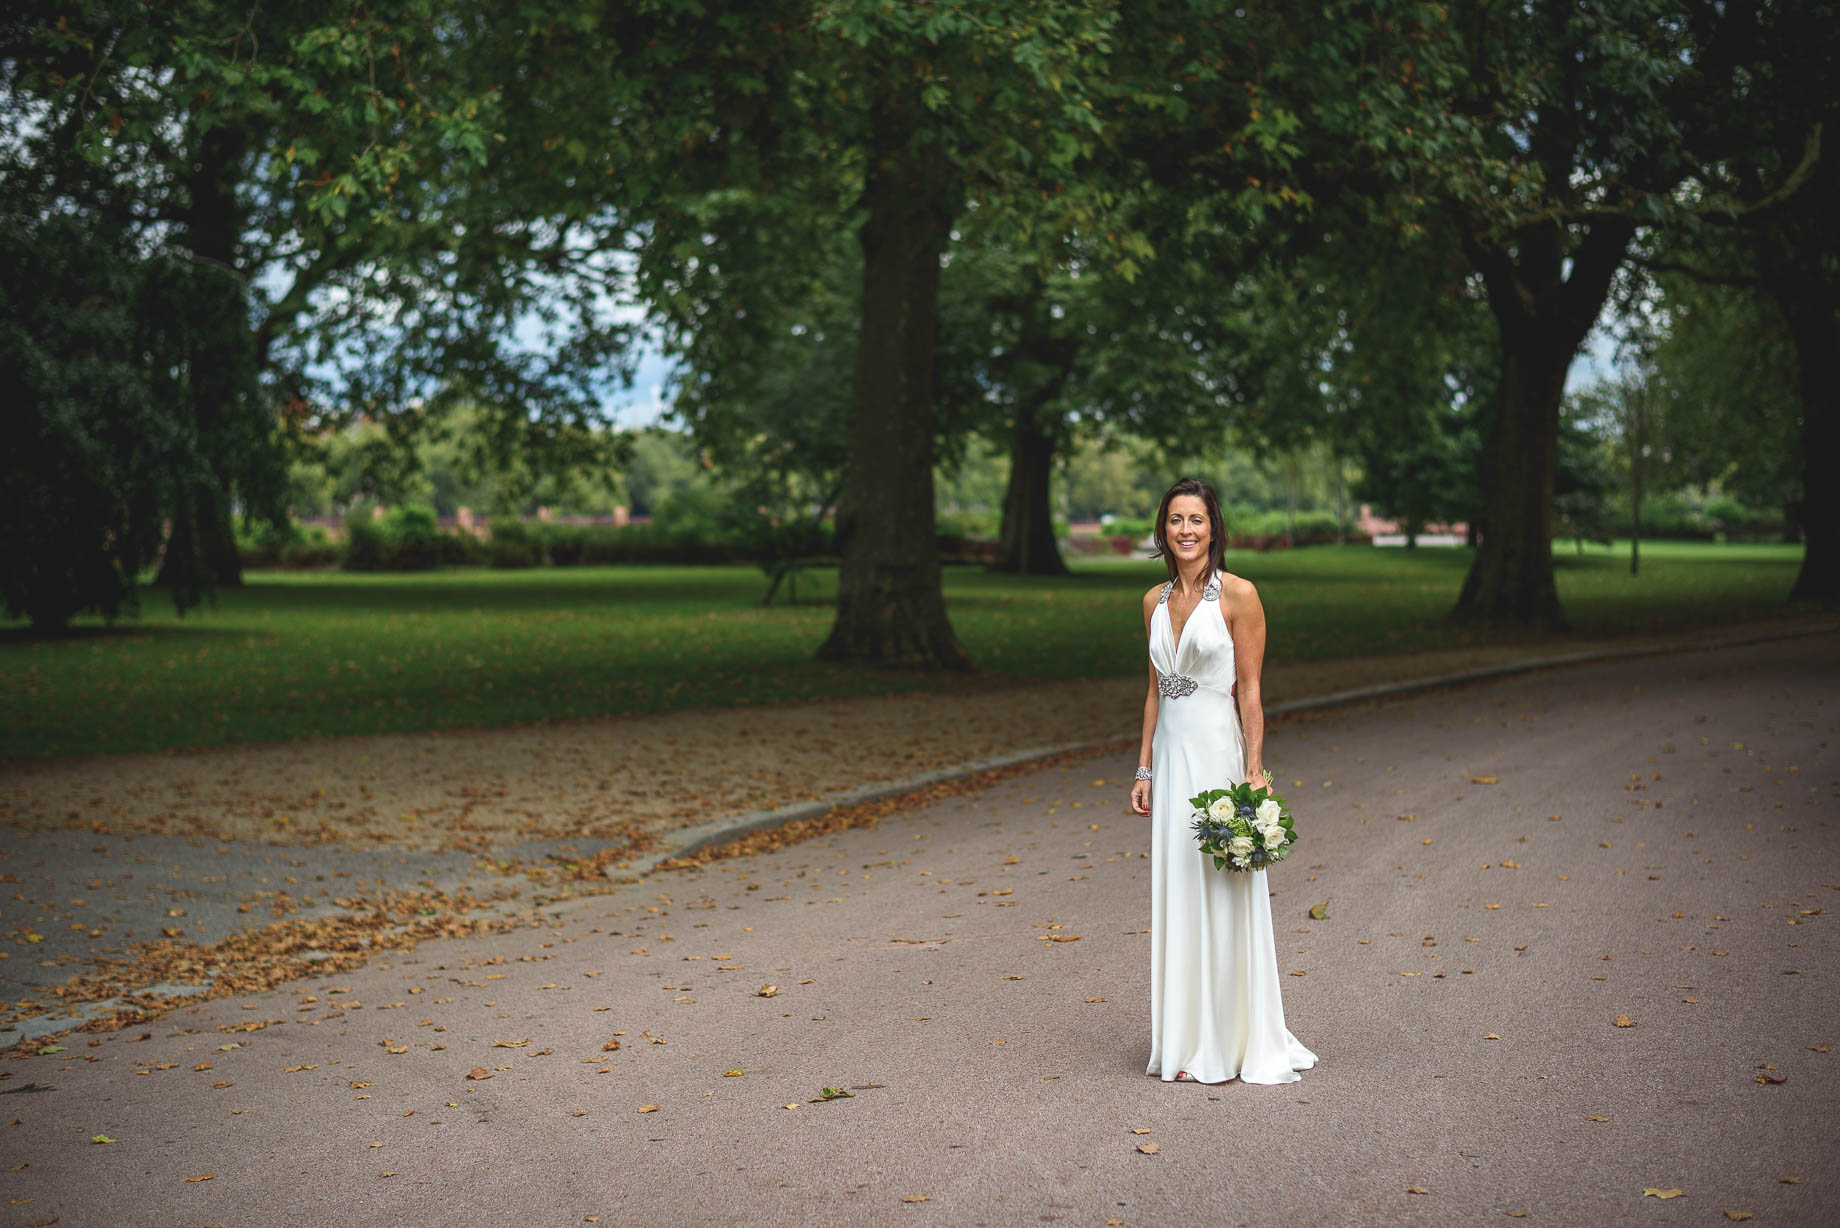 Chelsea and Mayfair wedding photography - Guy Collier - Vicki and Damien (95 of 126)